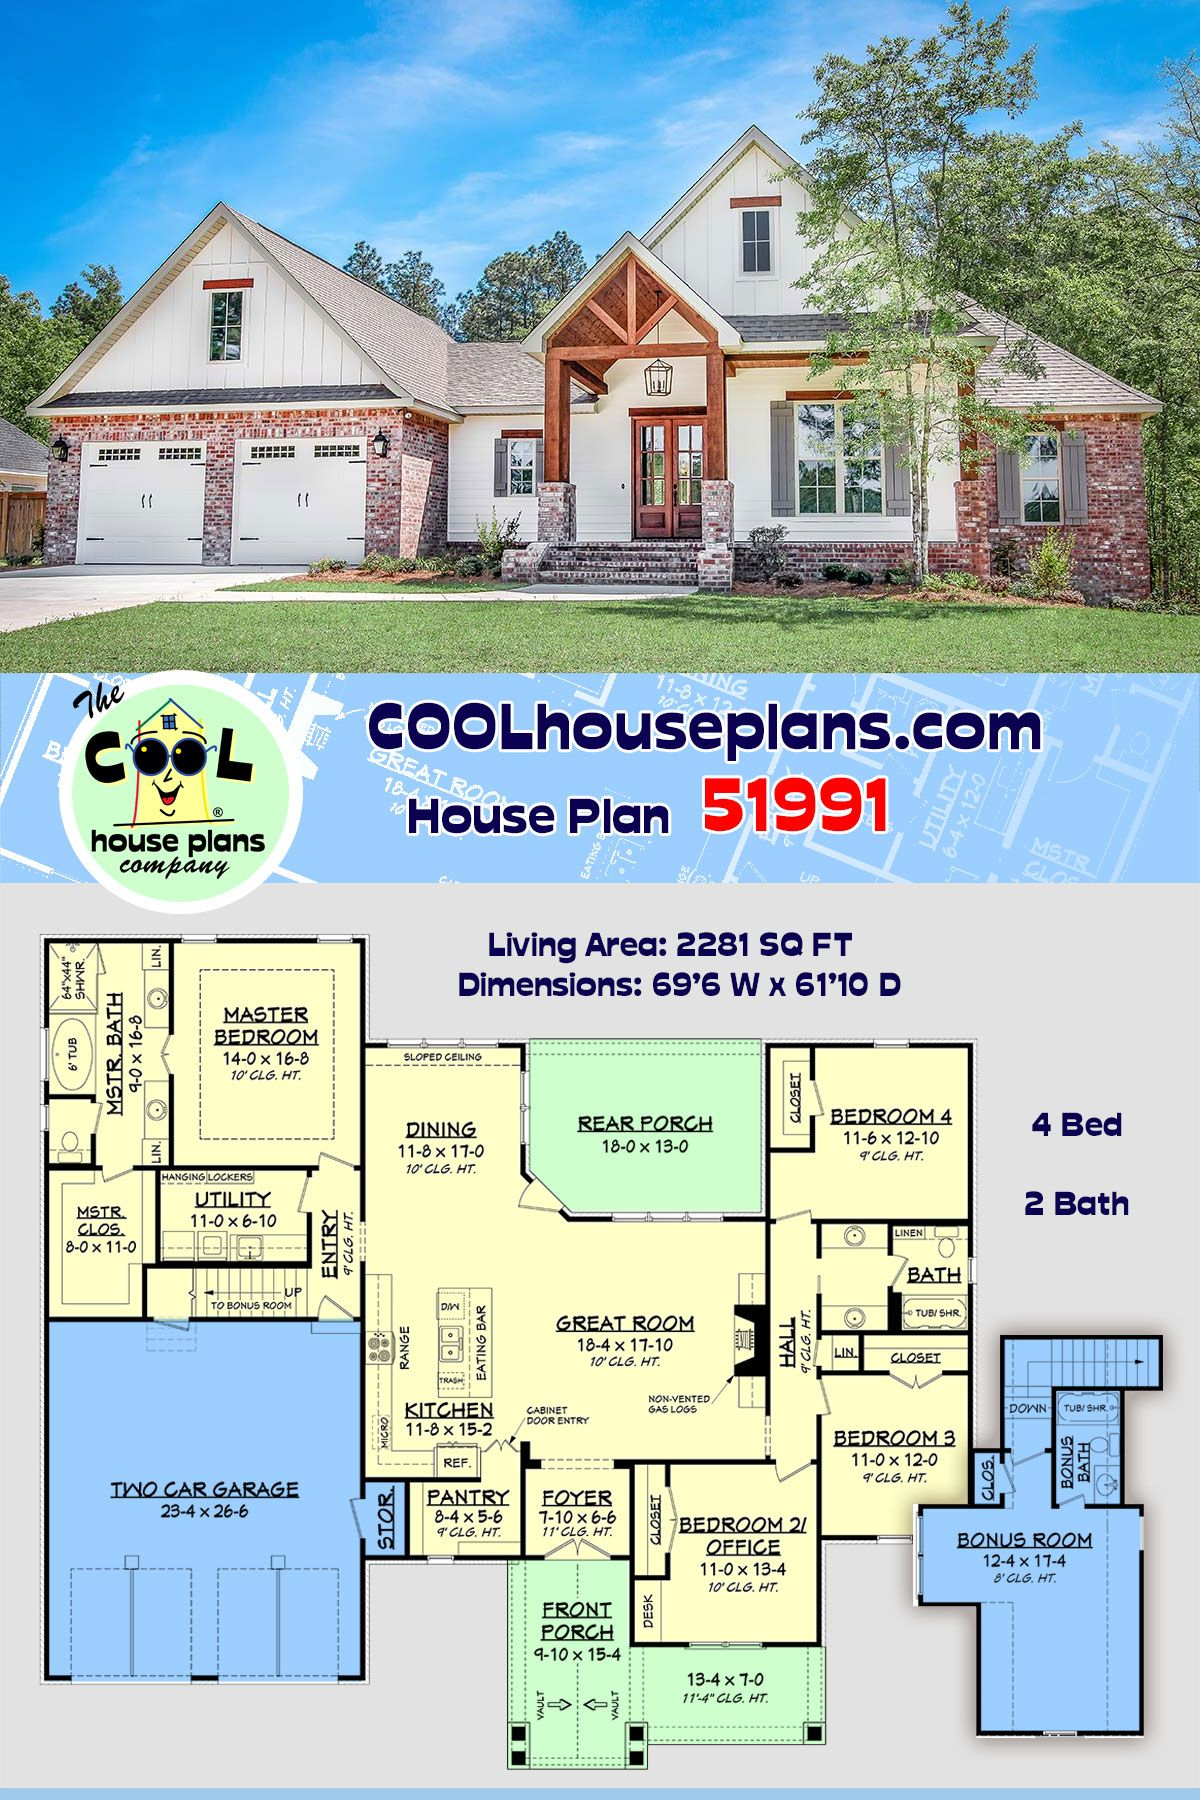 Traditional Style House Plan 51991 With 4 Bed 2 Bath 2 Car Garage Craftsman House Plans New House Plans House Plans